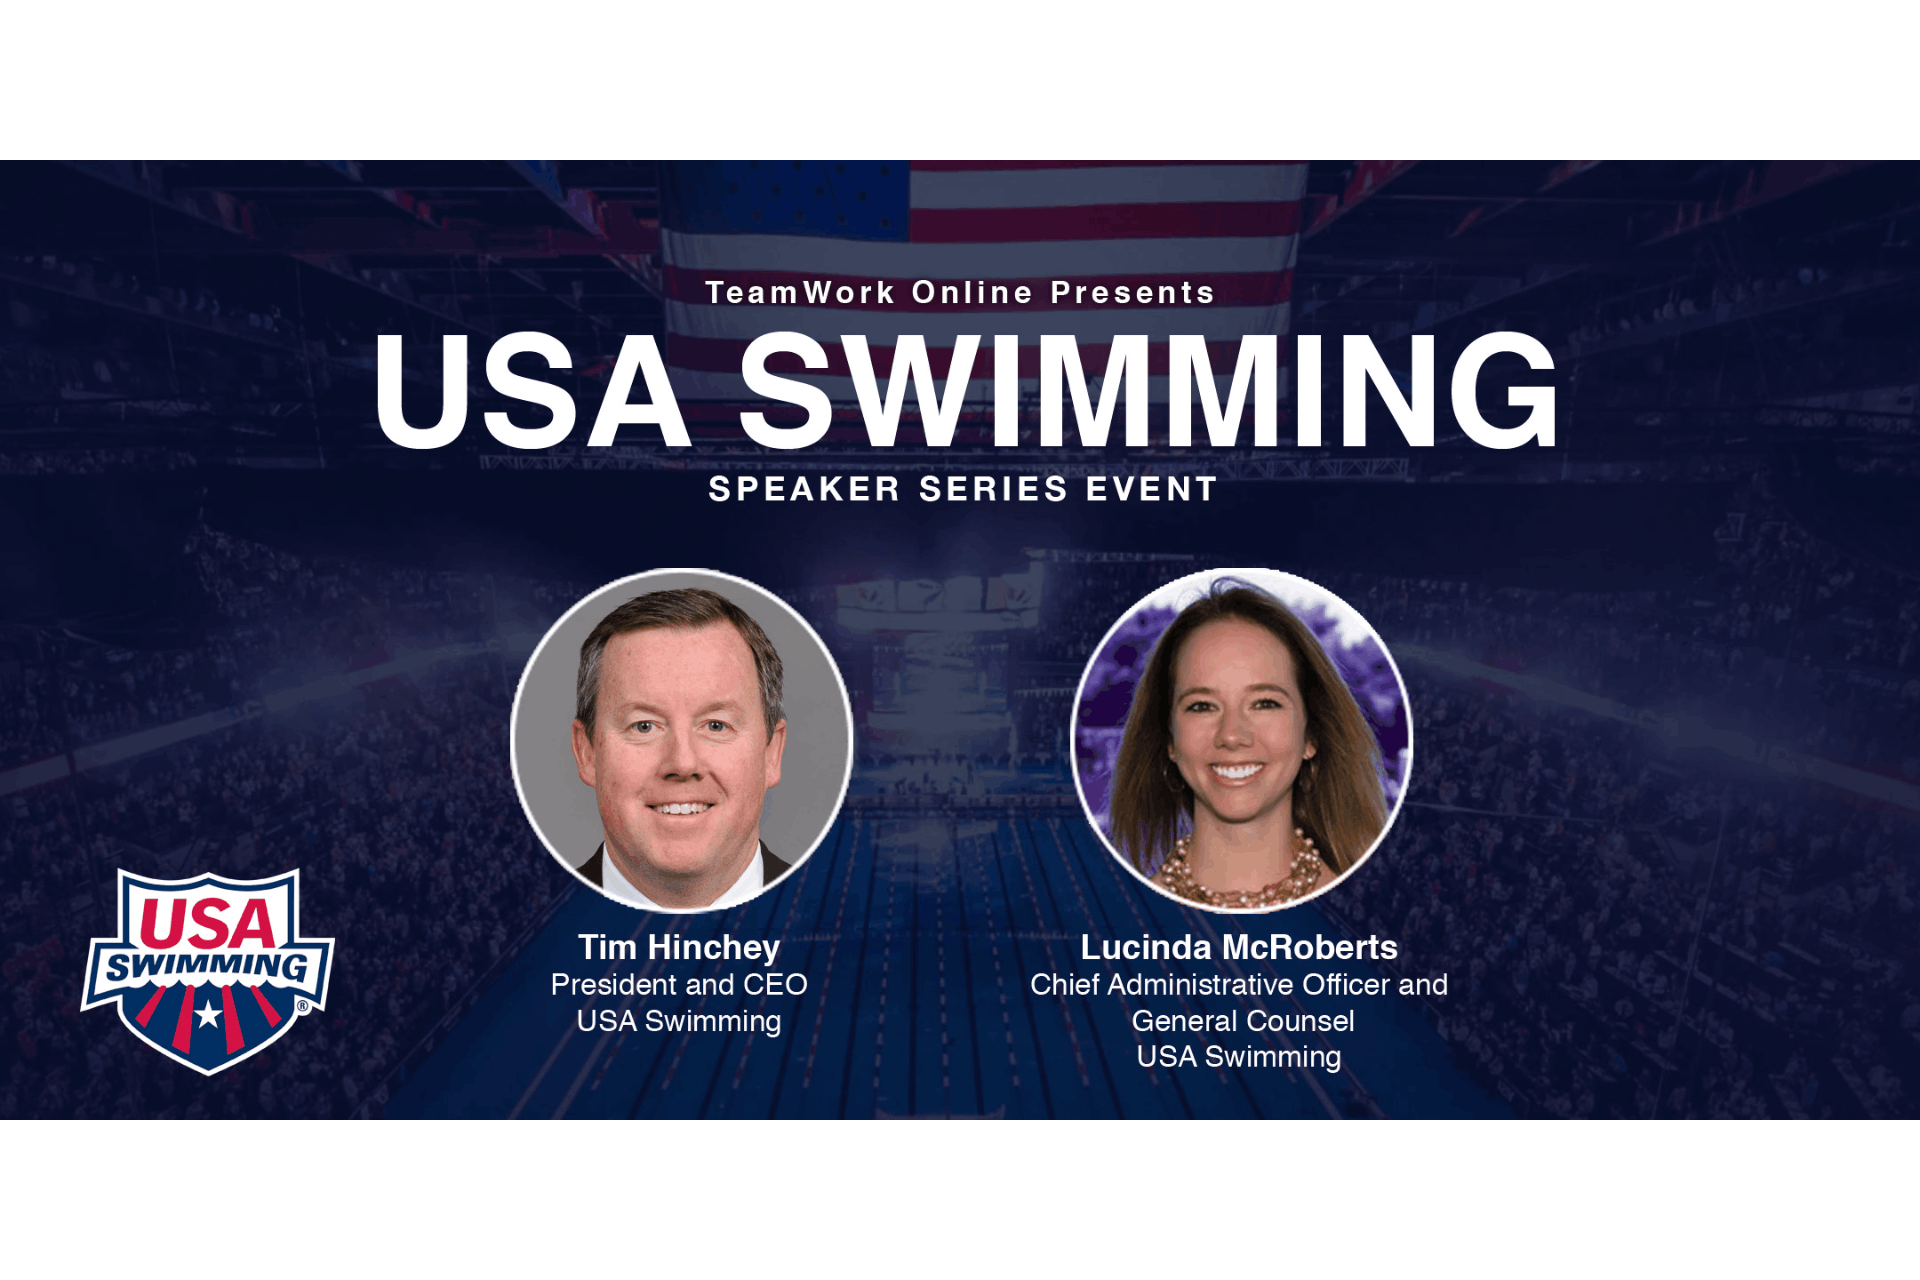 USA Swimming Ad